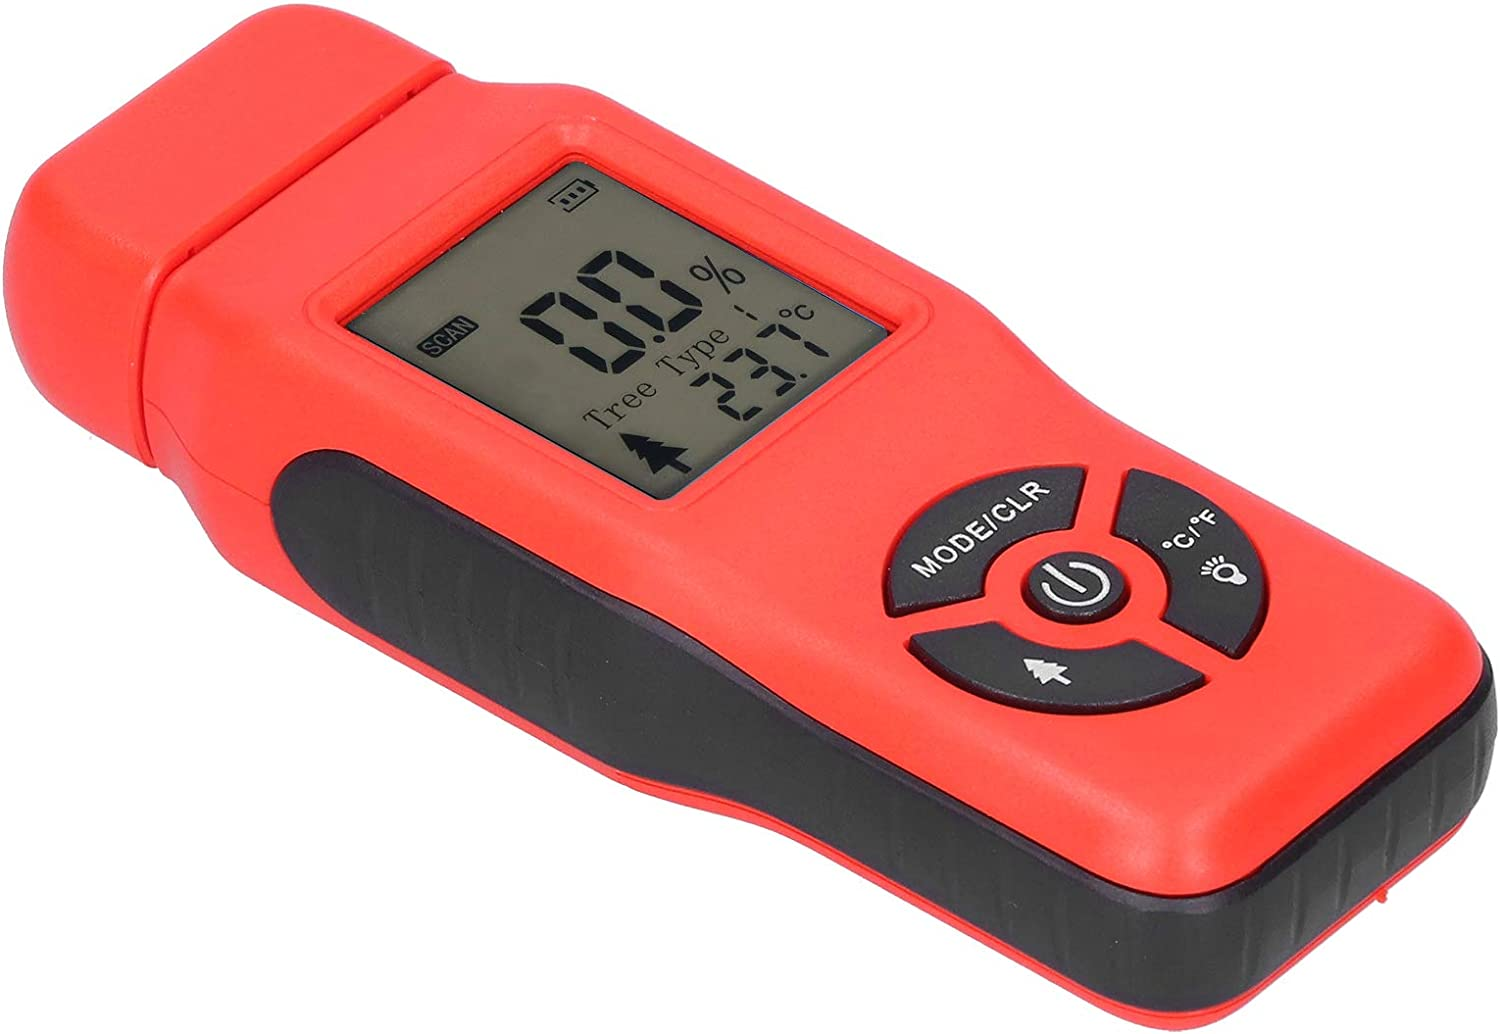 Outlet SALE Voluxe Moisture Detector LCD Material National uniform free shipping Wood ABS Display